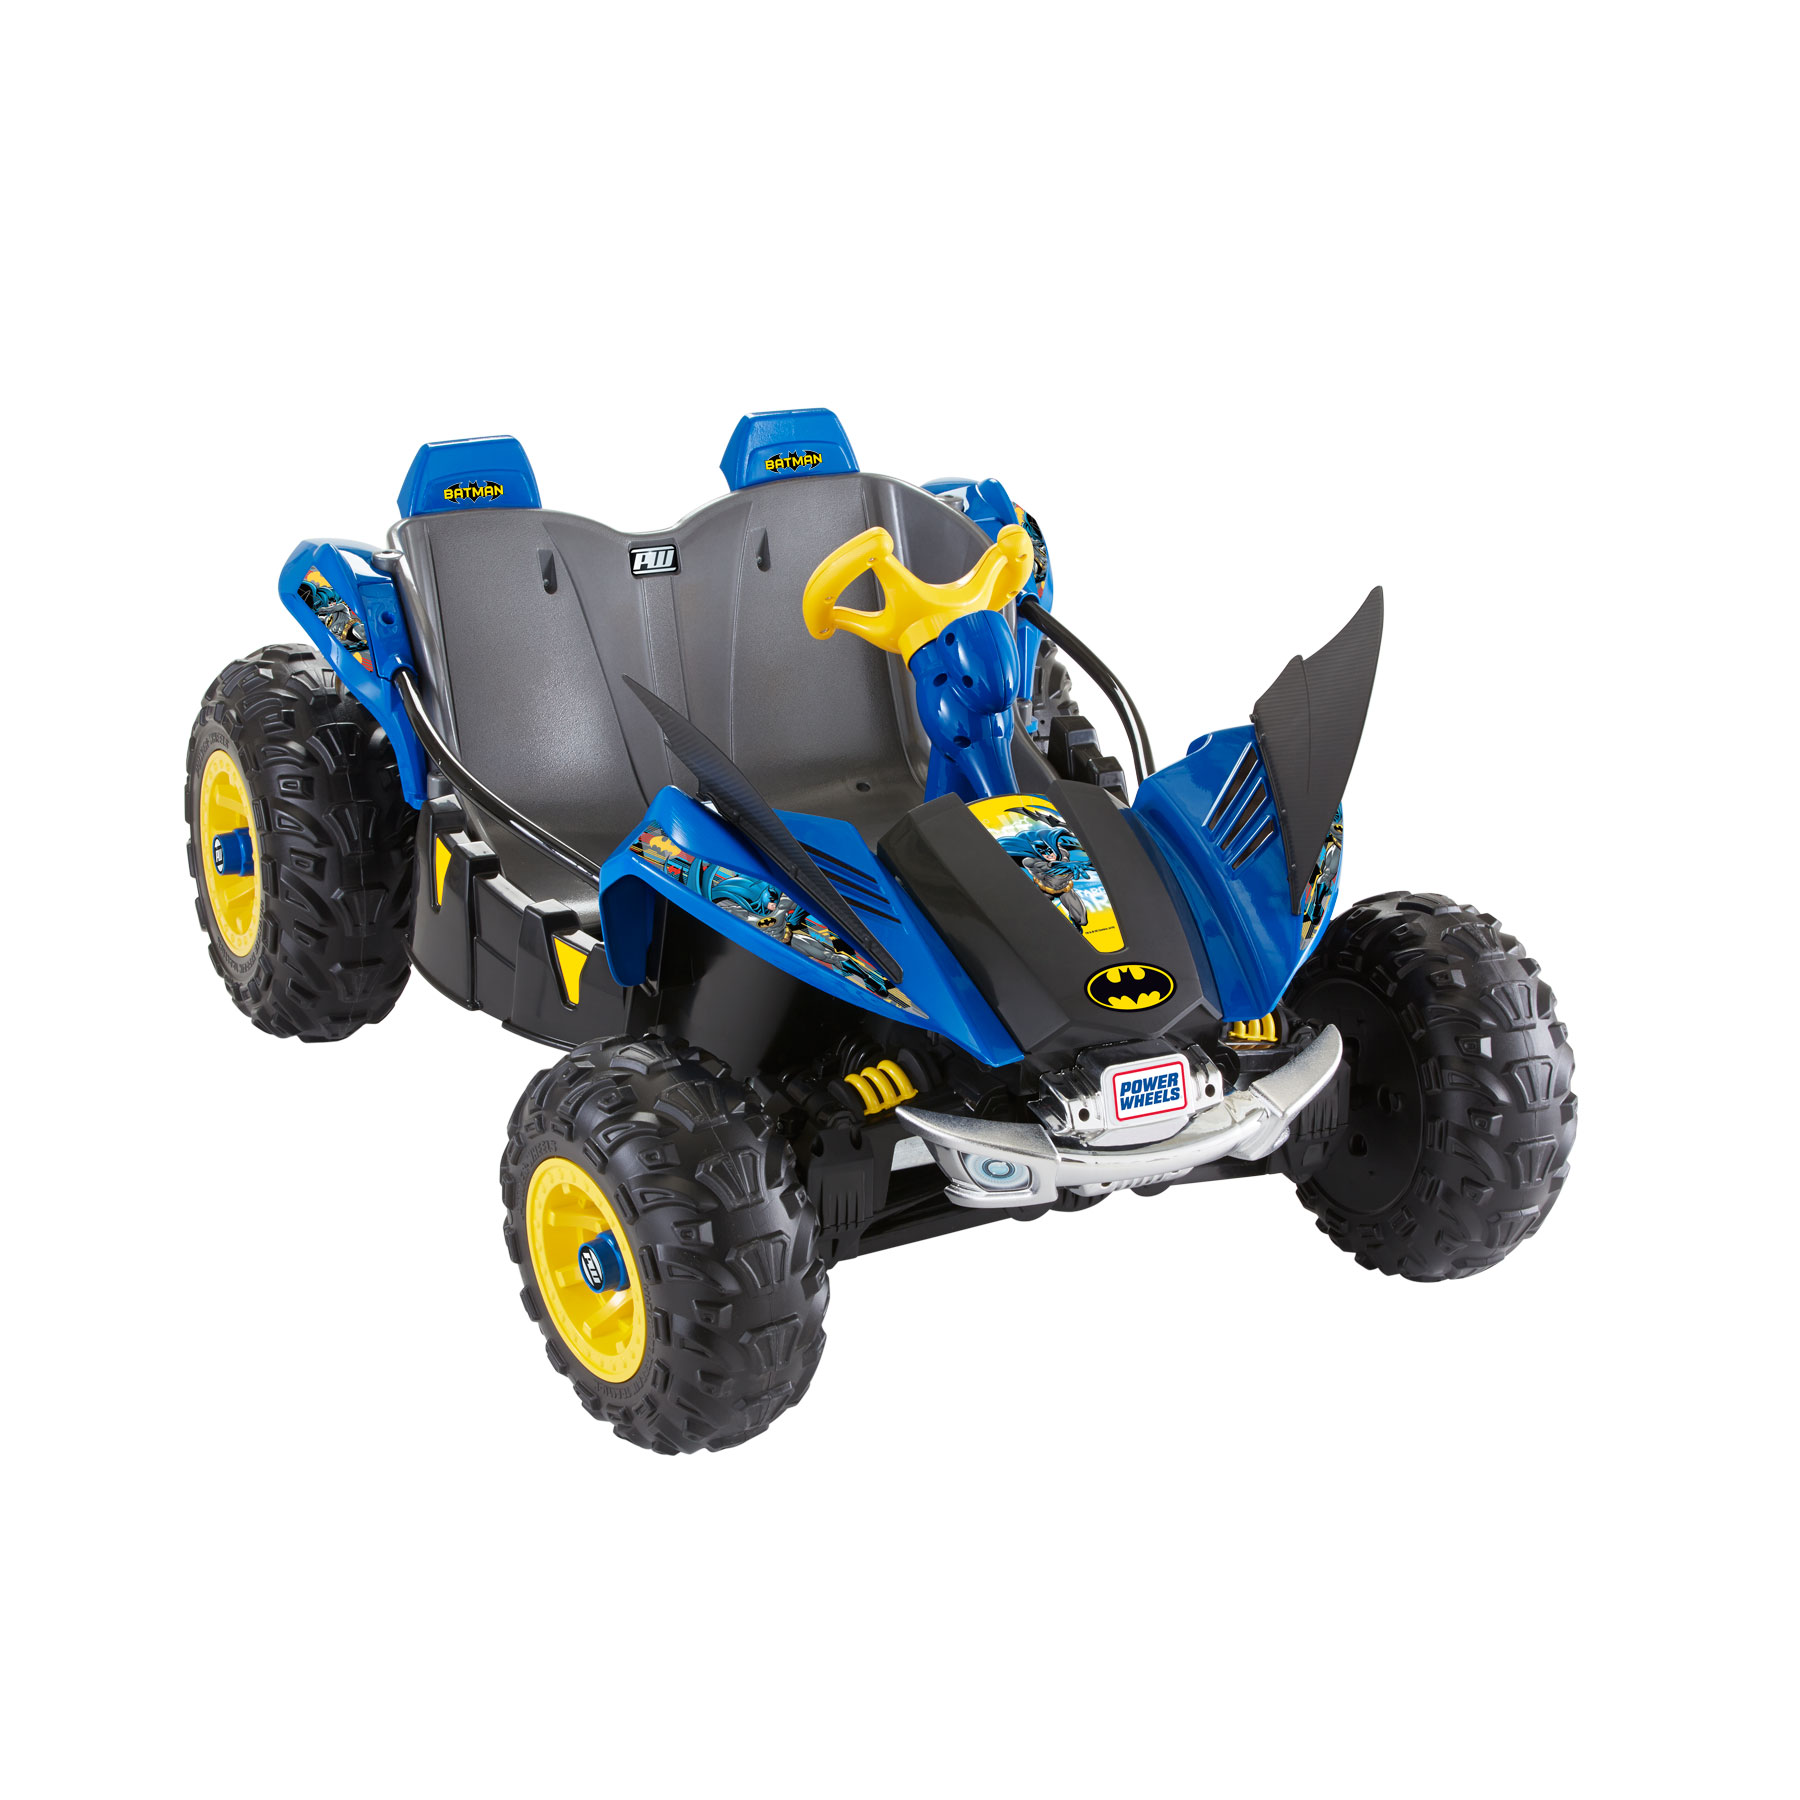 Battery Replacement 12v Riding Toy